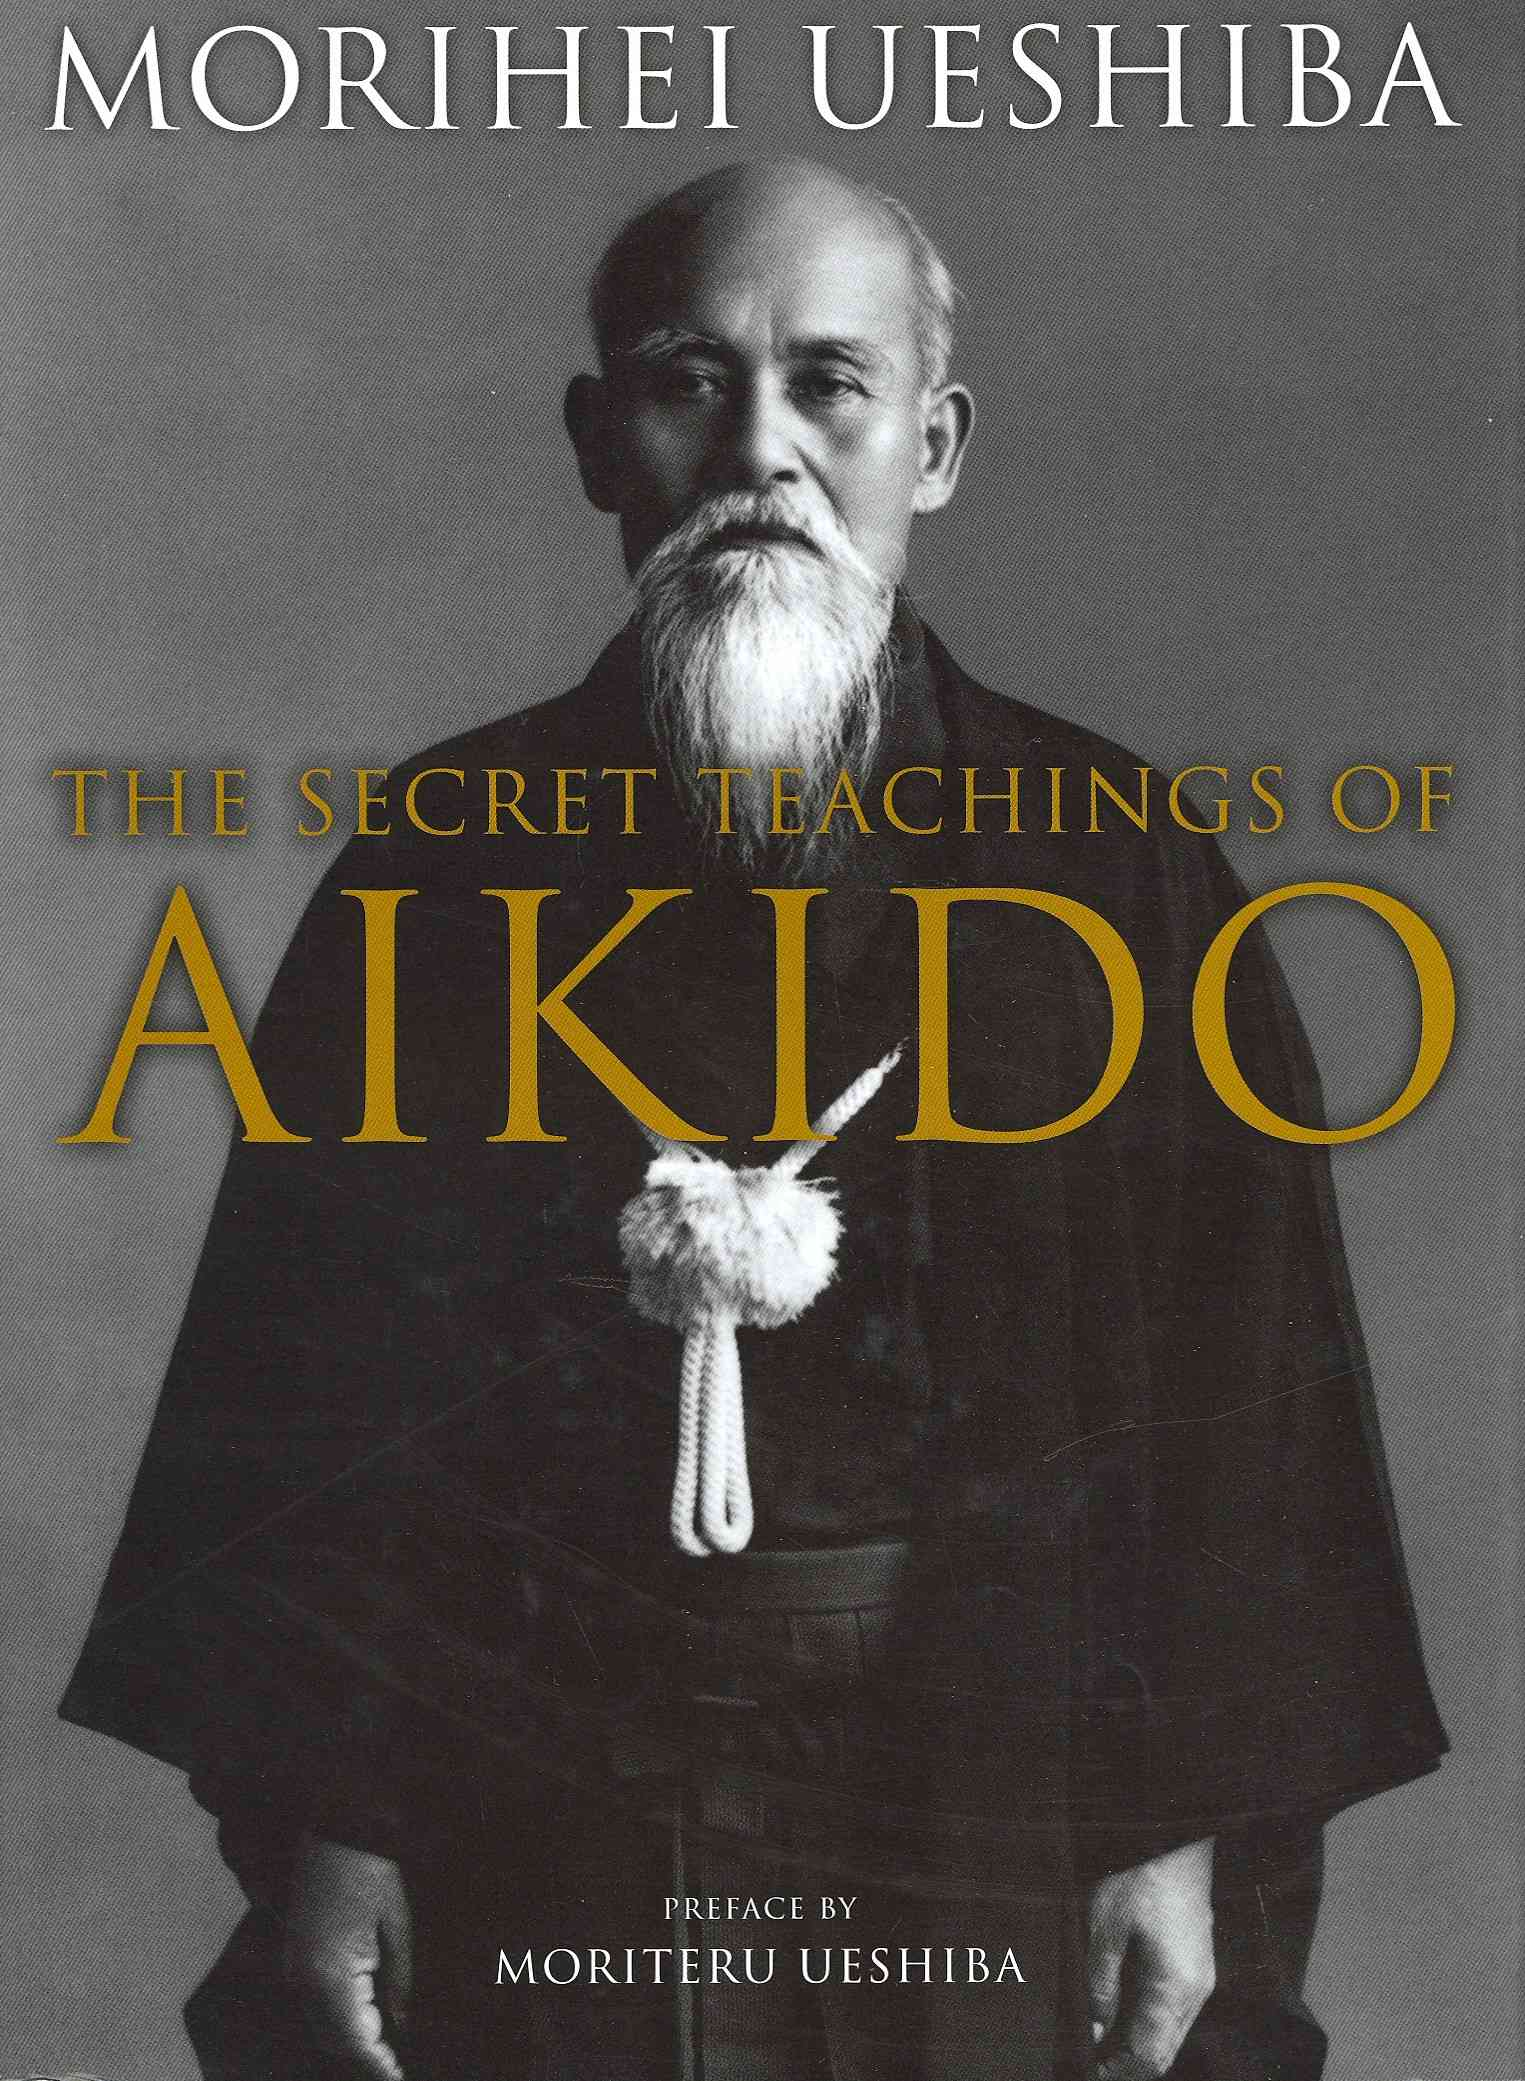 The Secret Teachings of Aikido By Ueshiba, Morihei/ Ueshiba, Moriteru/ Stevens, John (TRN)